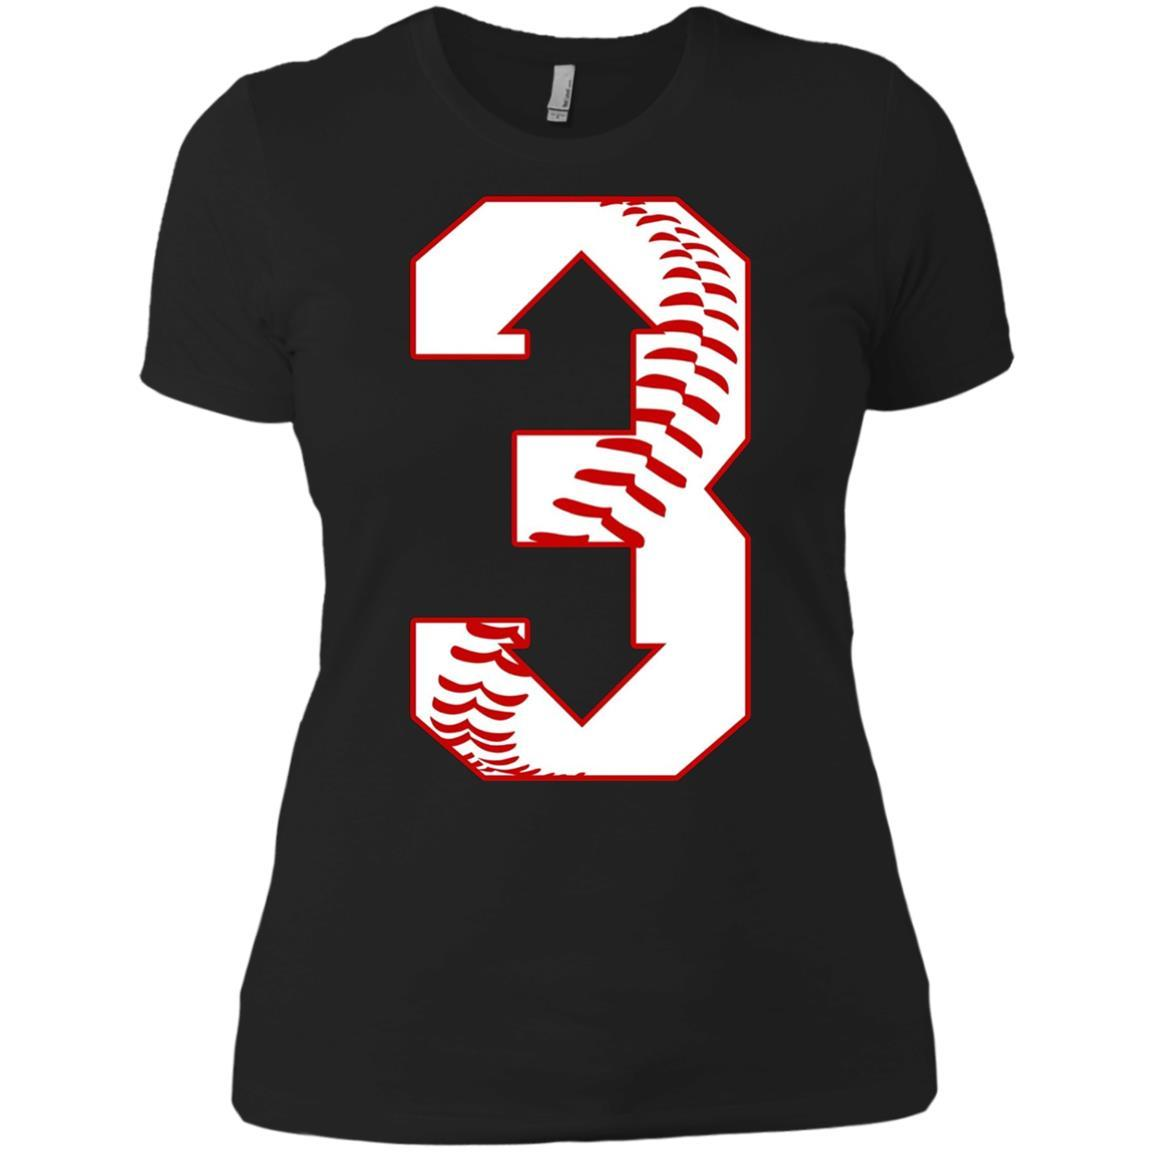 3 Up 3 Down Baseball Shirt & Funny Baseball Shirt Gift